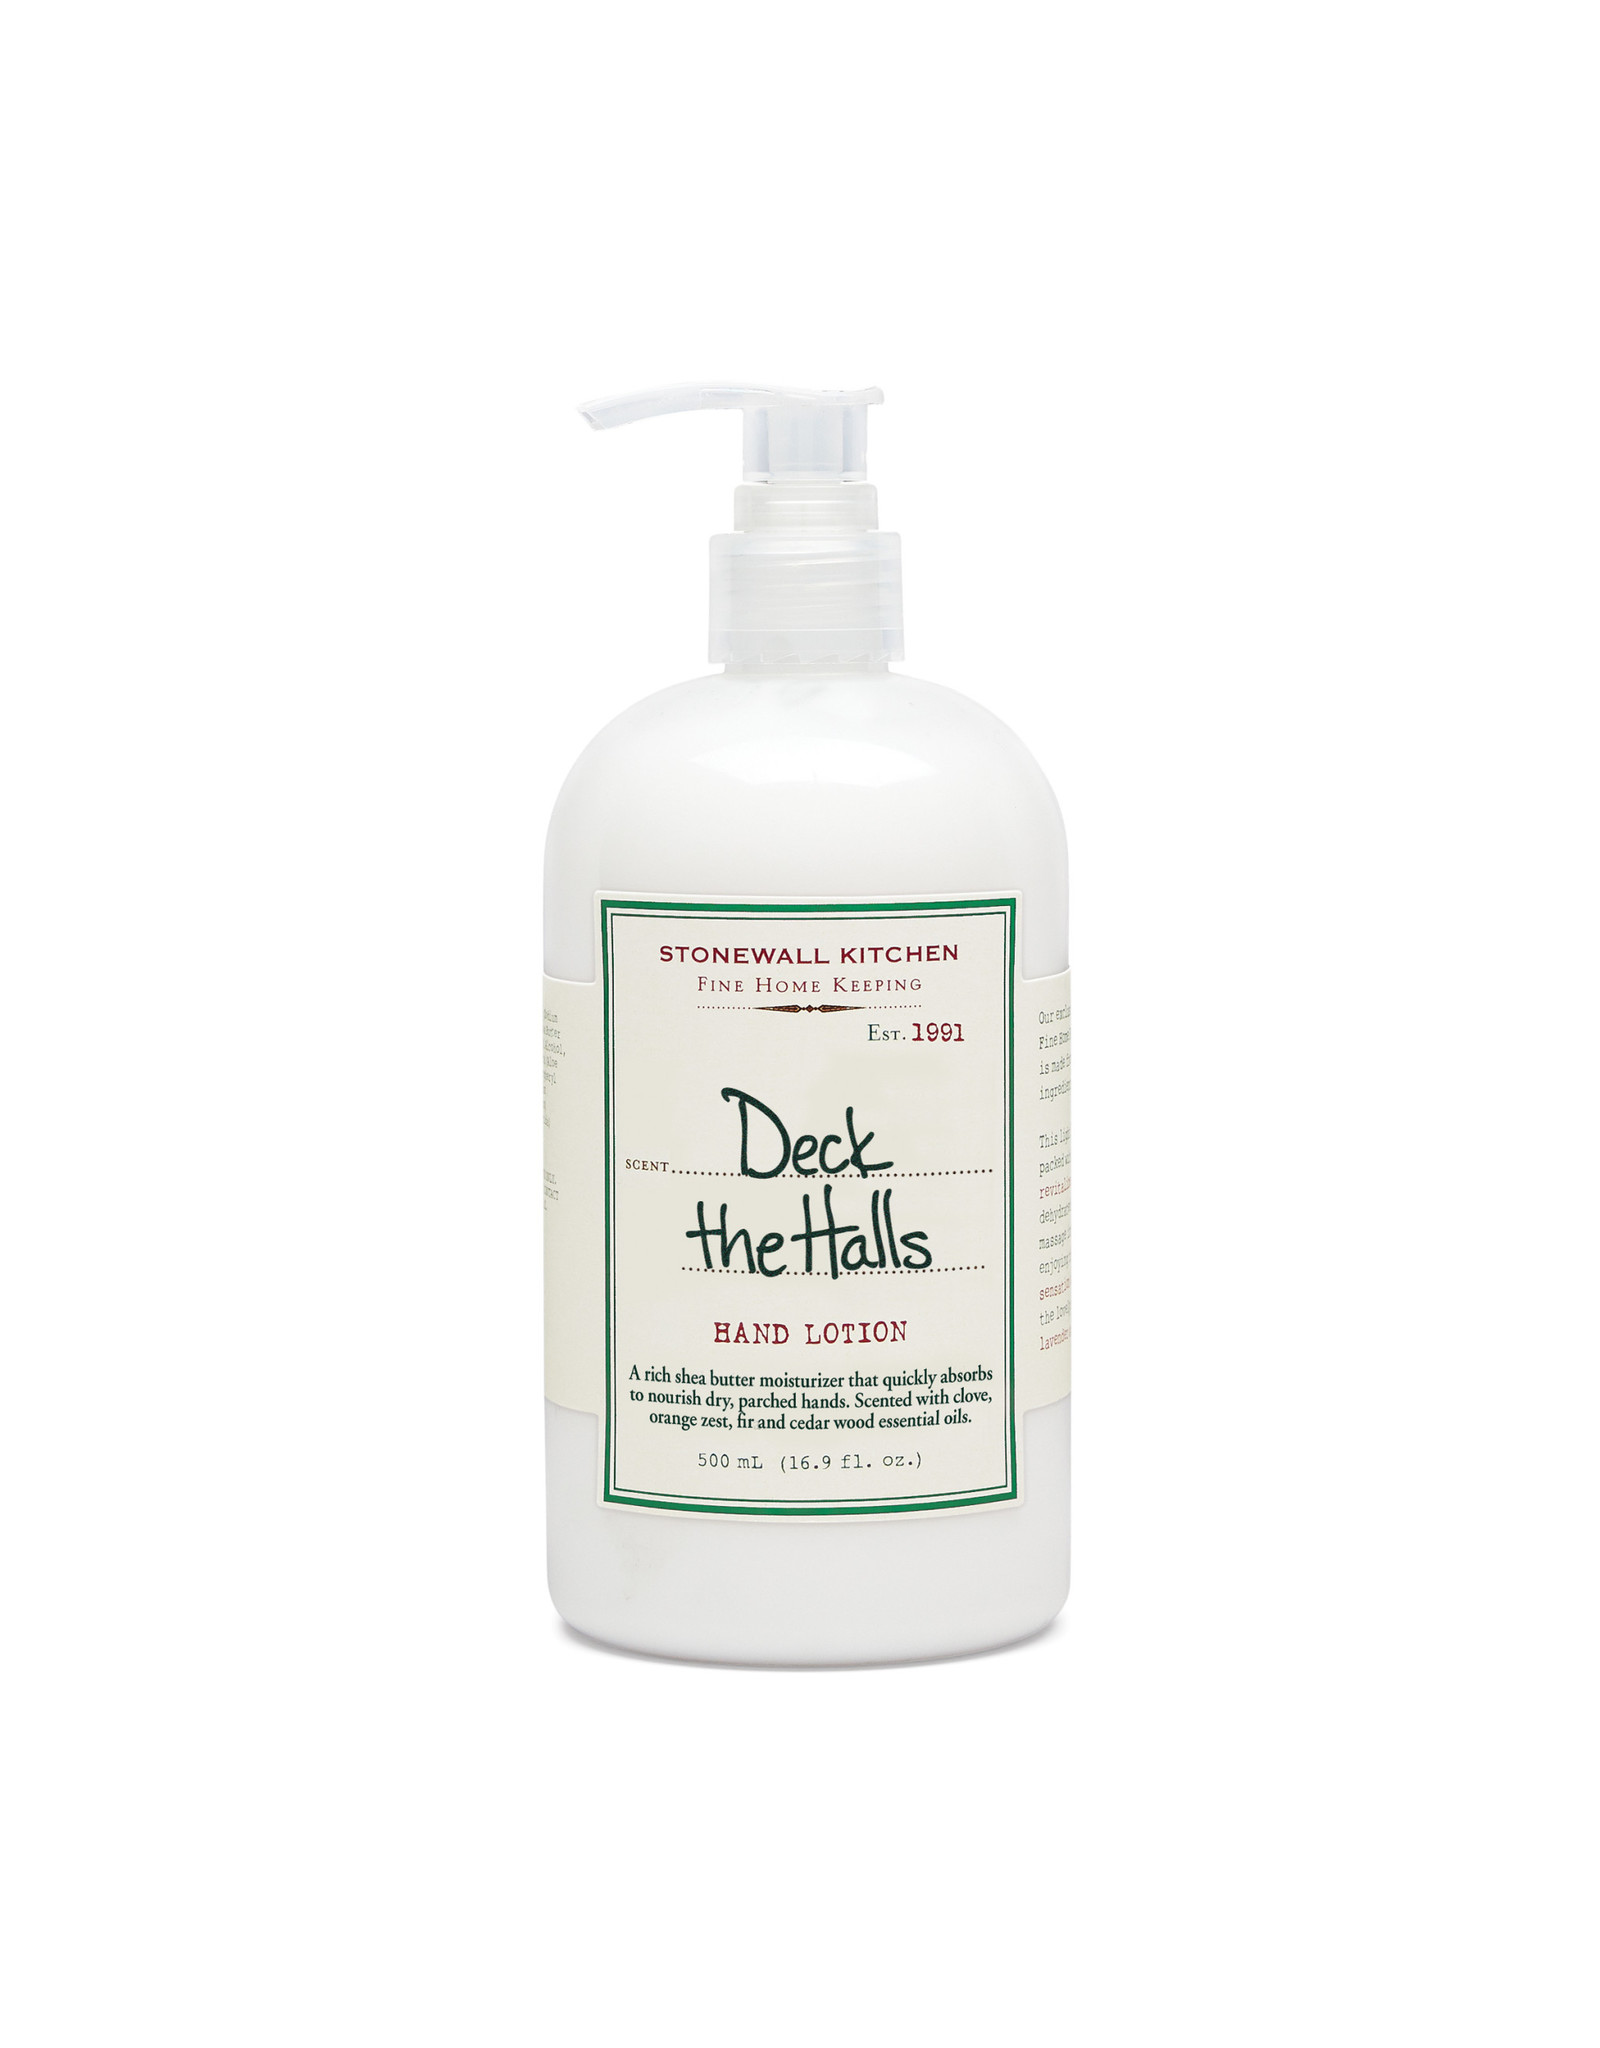 Stonewall Kitchen HAND LOTION